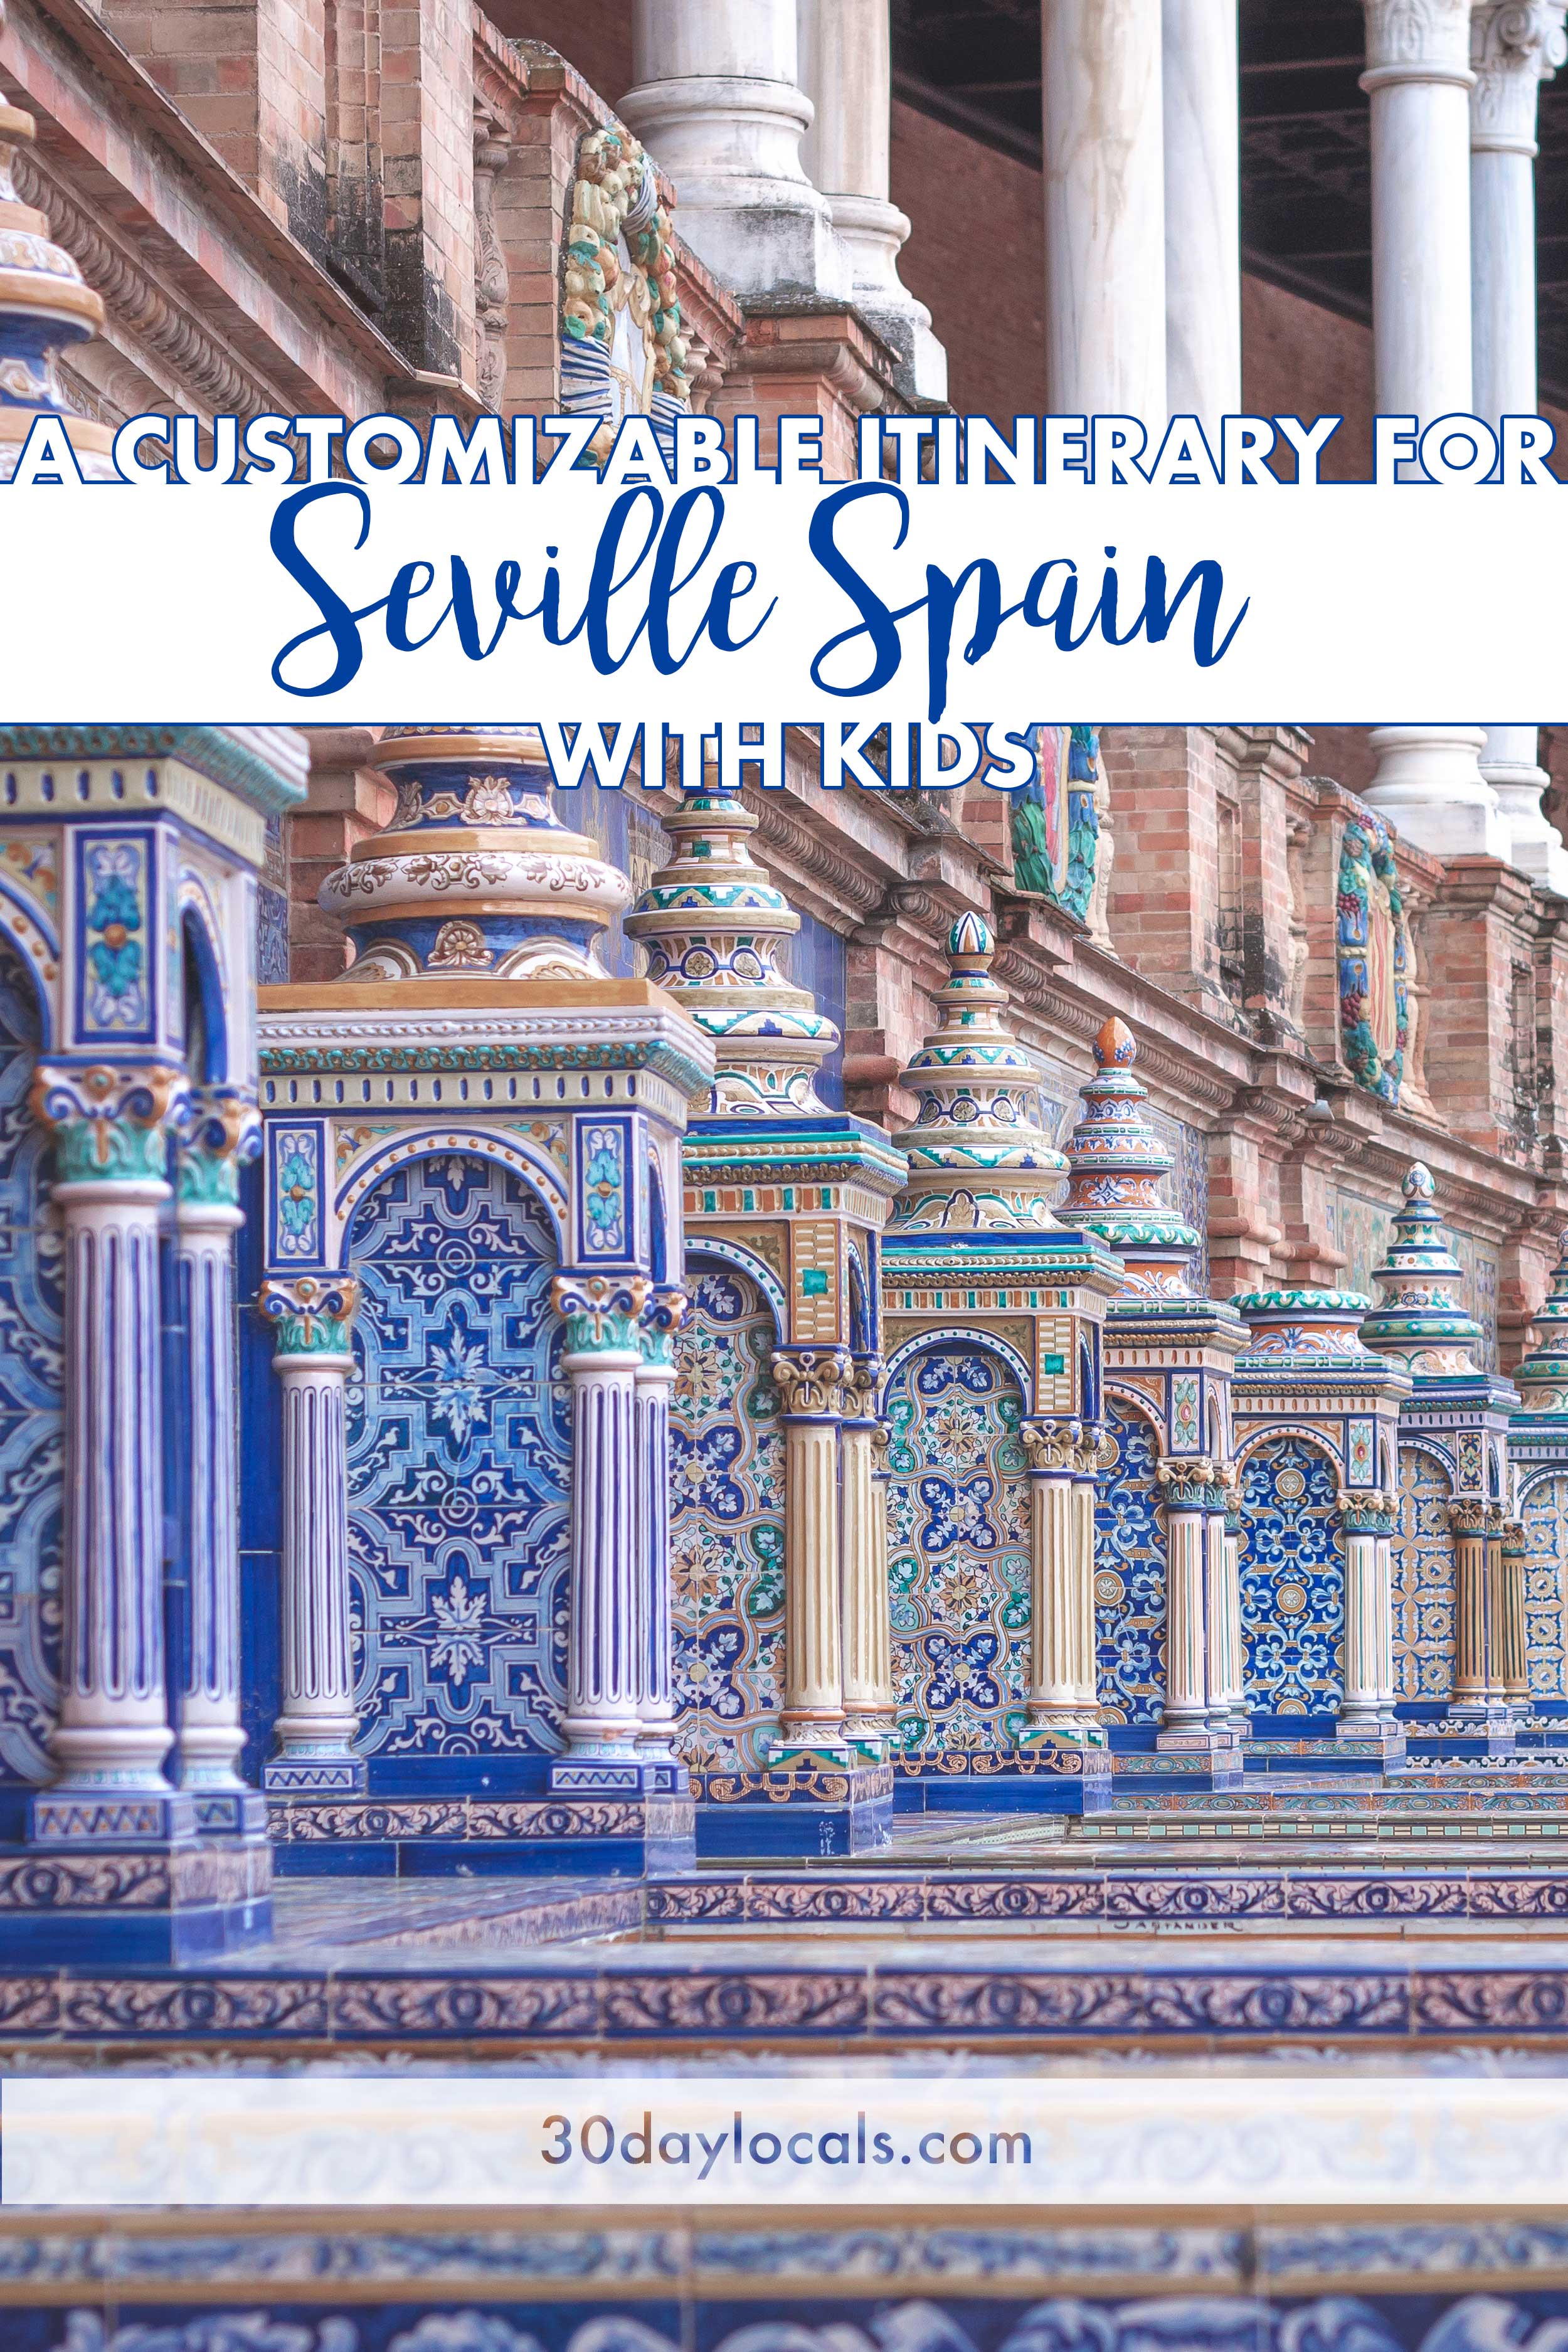 customizable-itinerary-seville-spain-with-kids.jpg